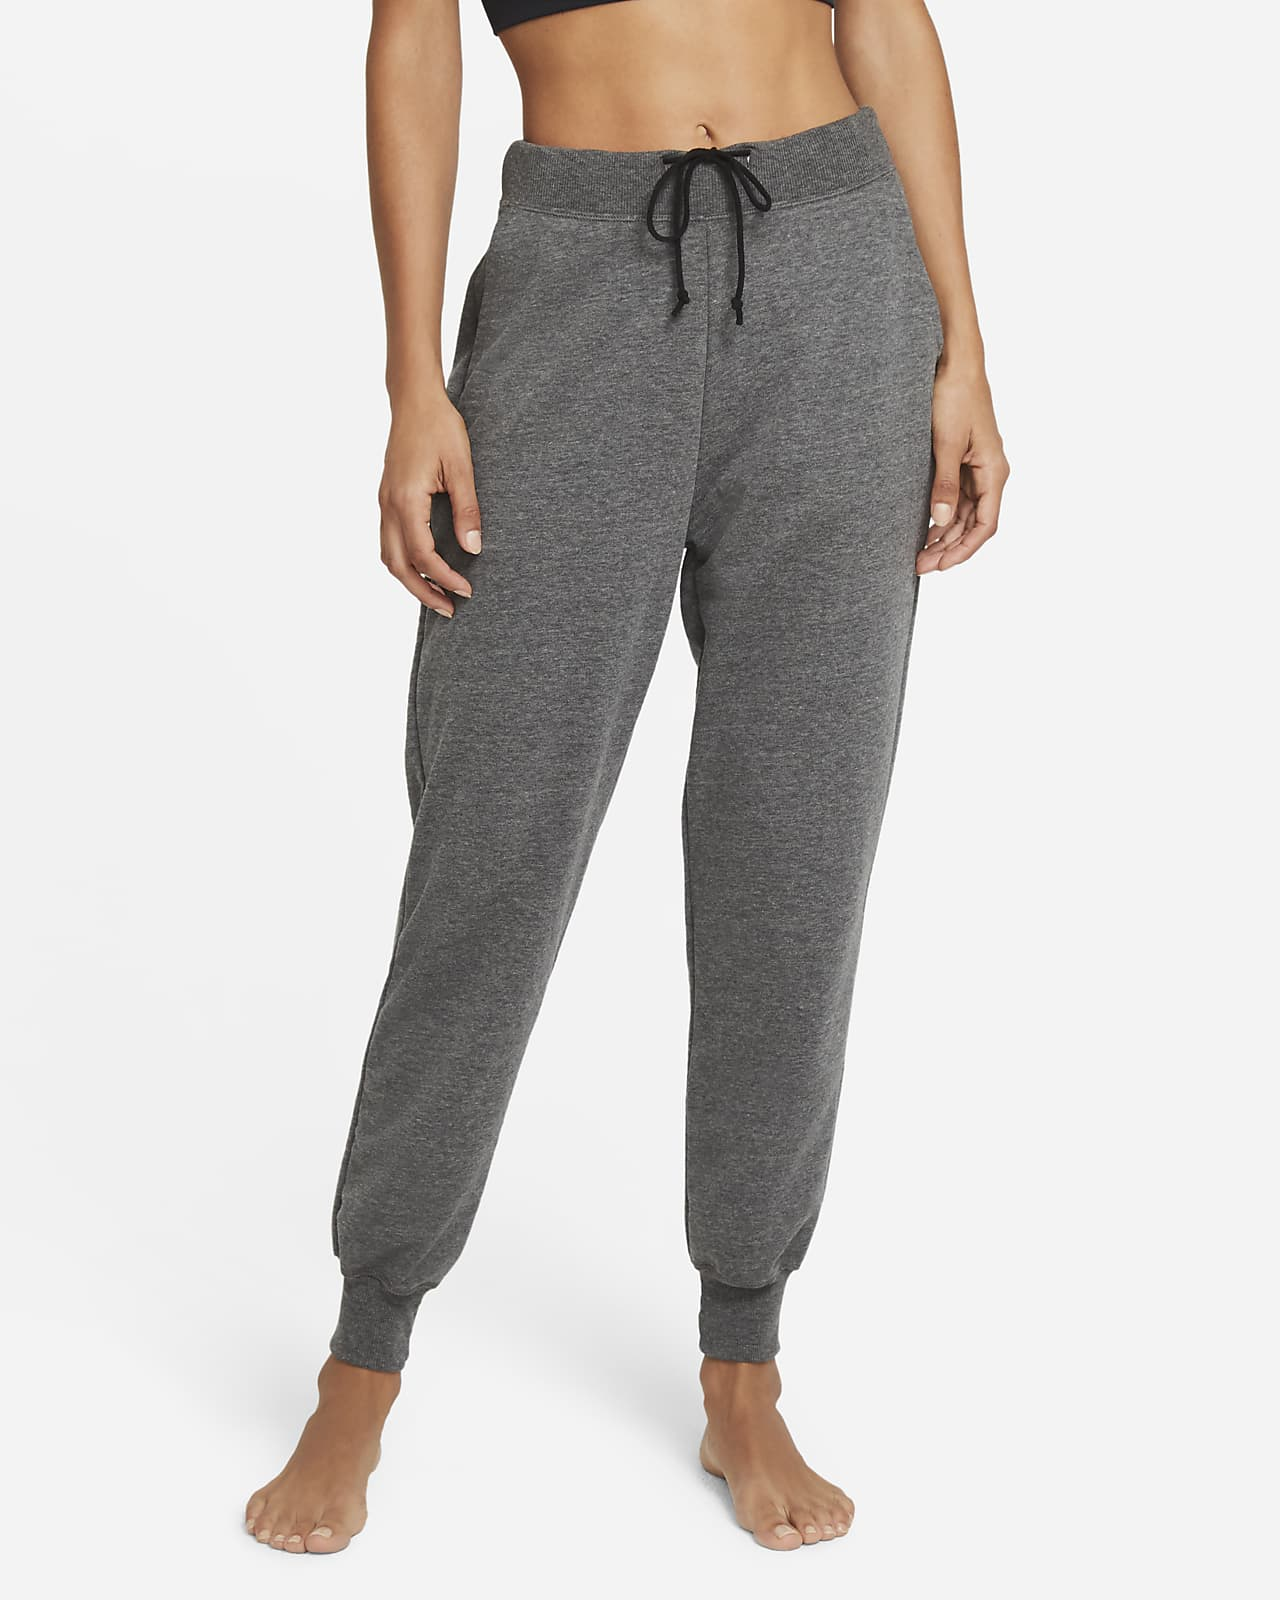 Nike Yoga Women's French Terry 7/8 Joggers